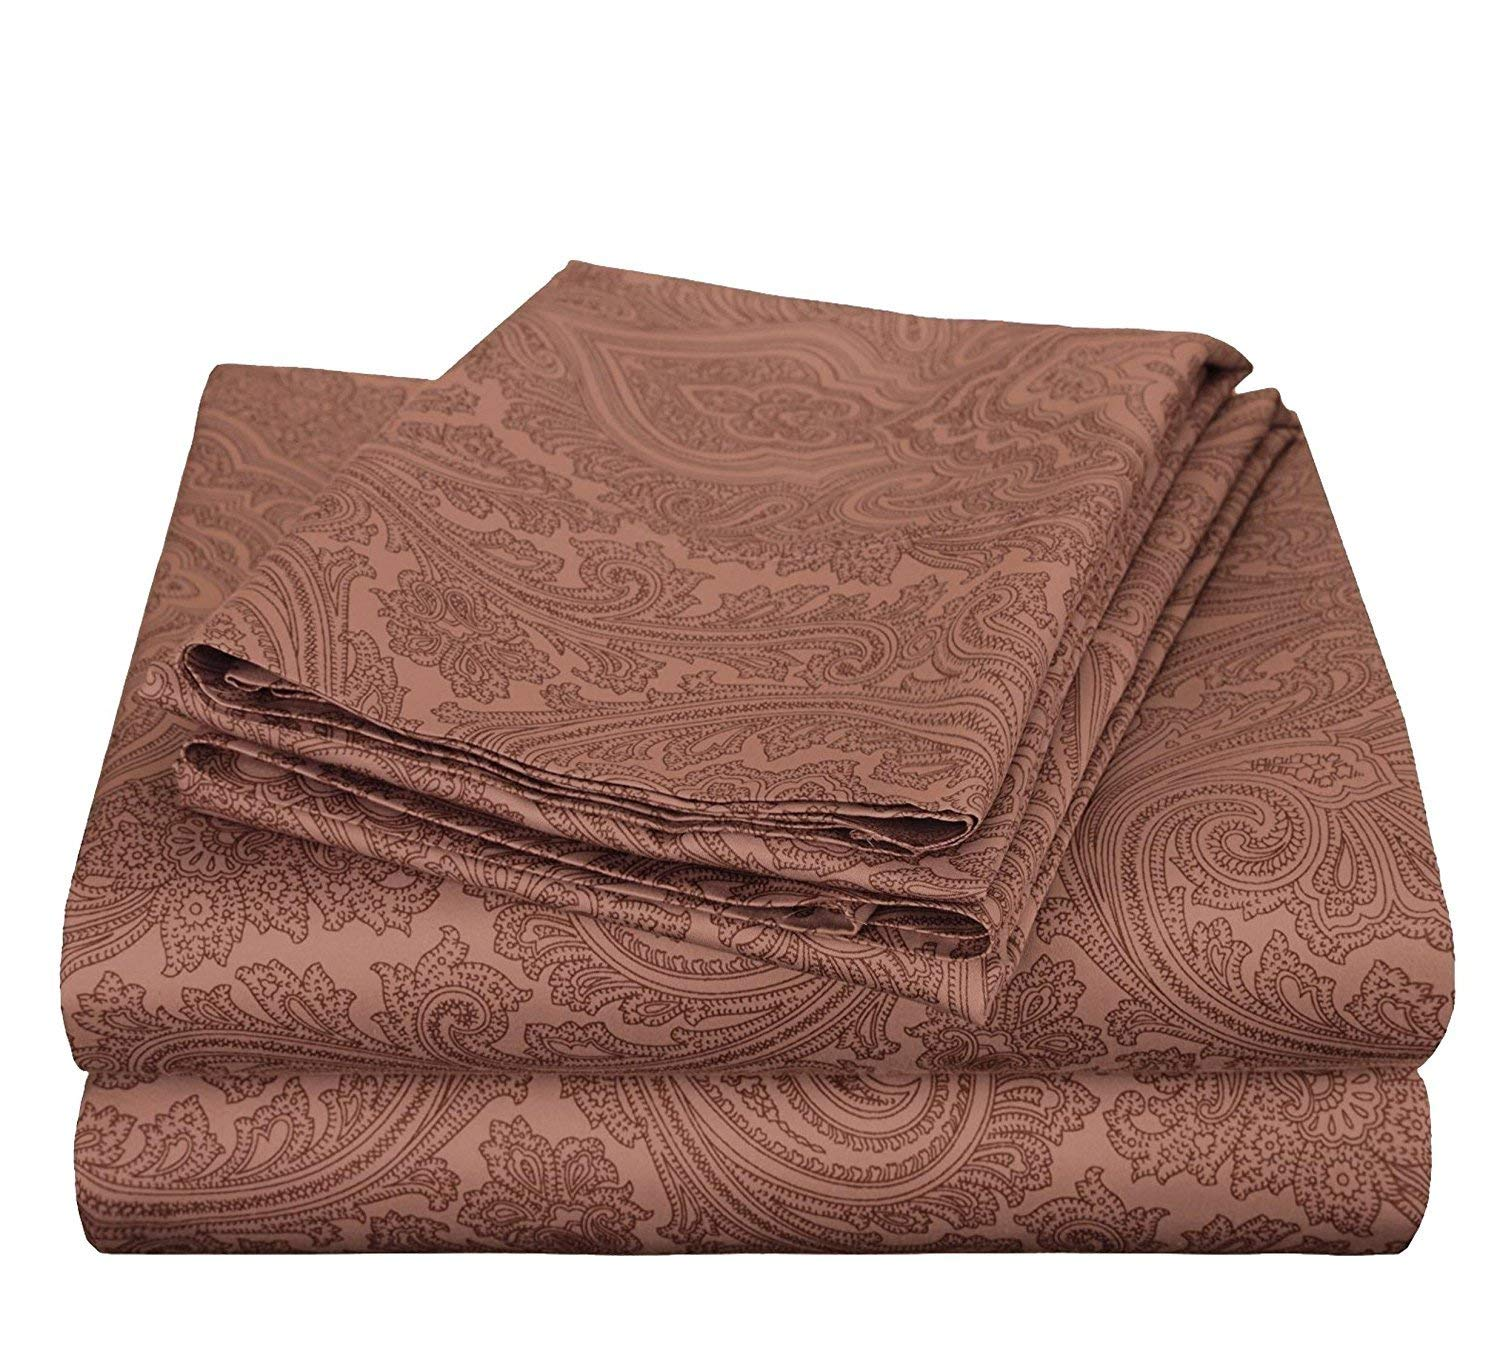 MISC 4pc Chocolate Color Paisley Themed King Sheet Set, Casual Colorful Teen Themed, Cotton Polyester, Bohemian Abstract Dark Brown Geometric Shape Deep Pocket Kids Bedding Bedroom